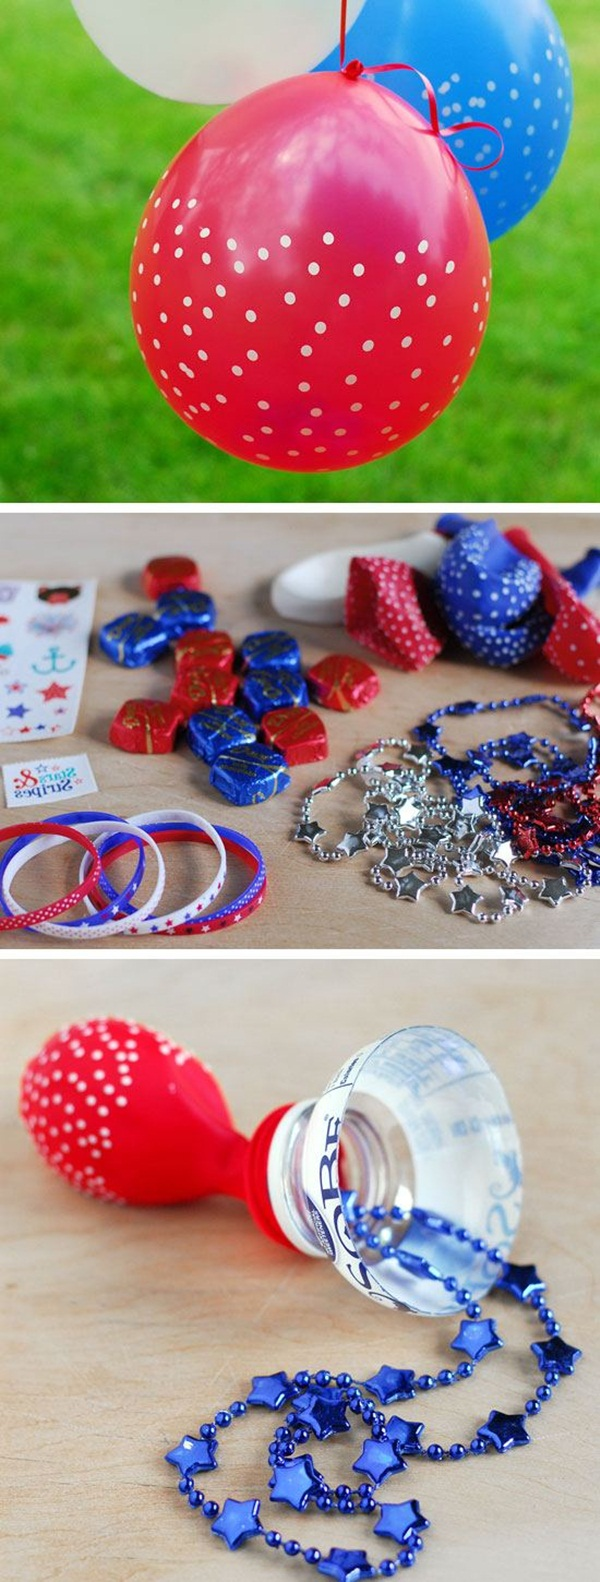 Fourth of July Crafts and Projects14